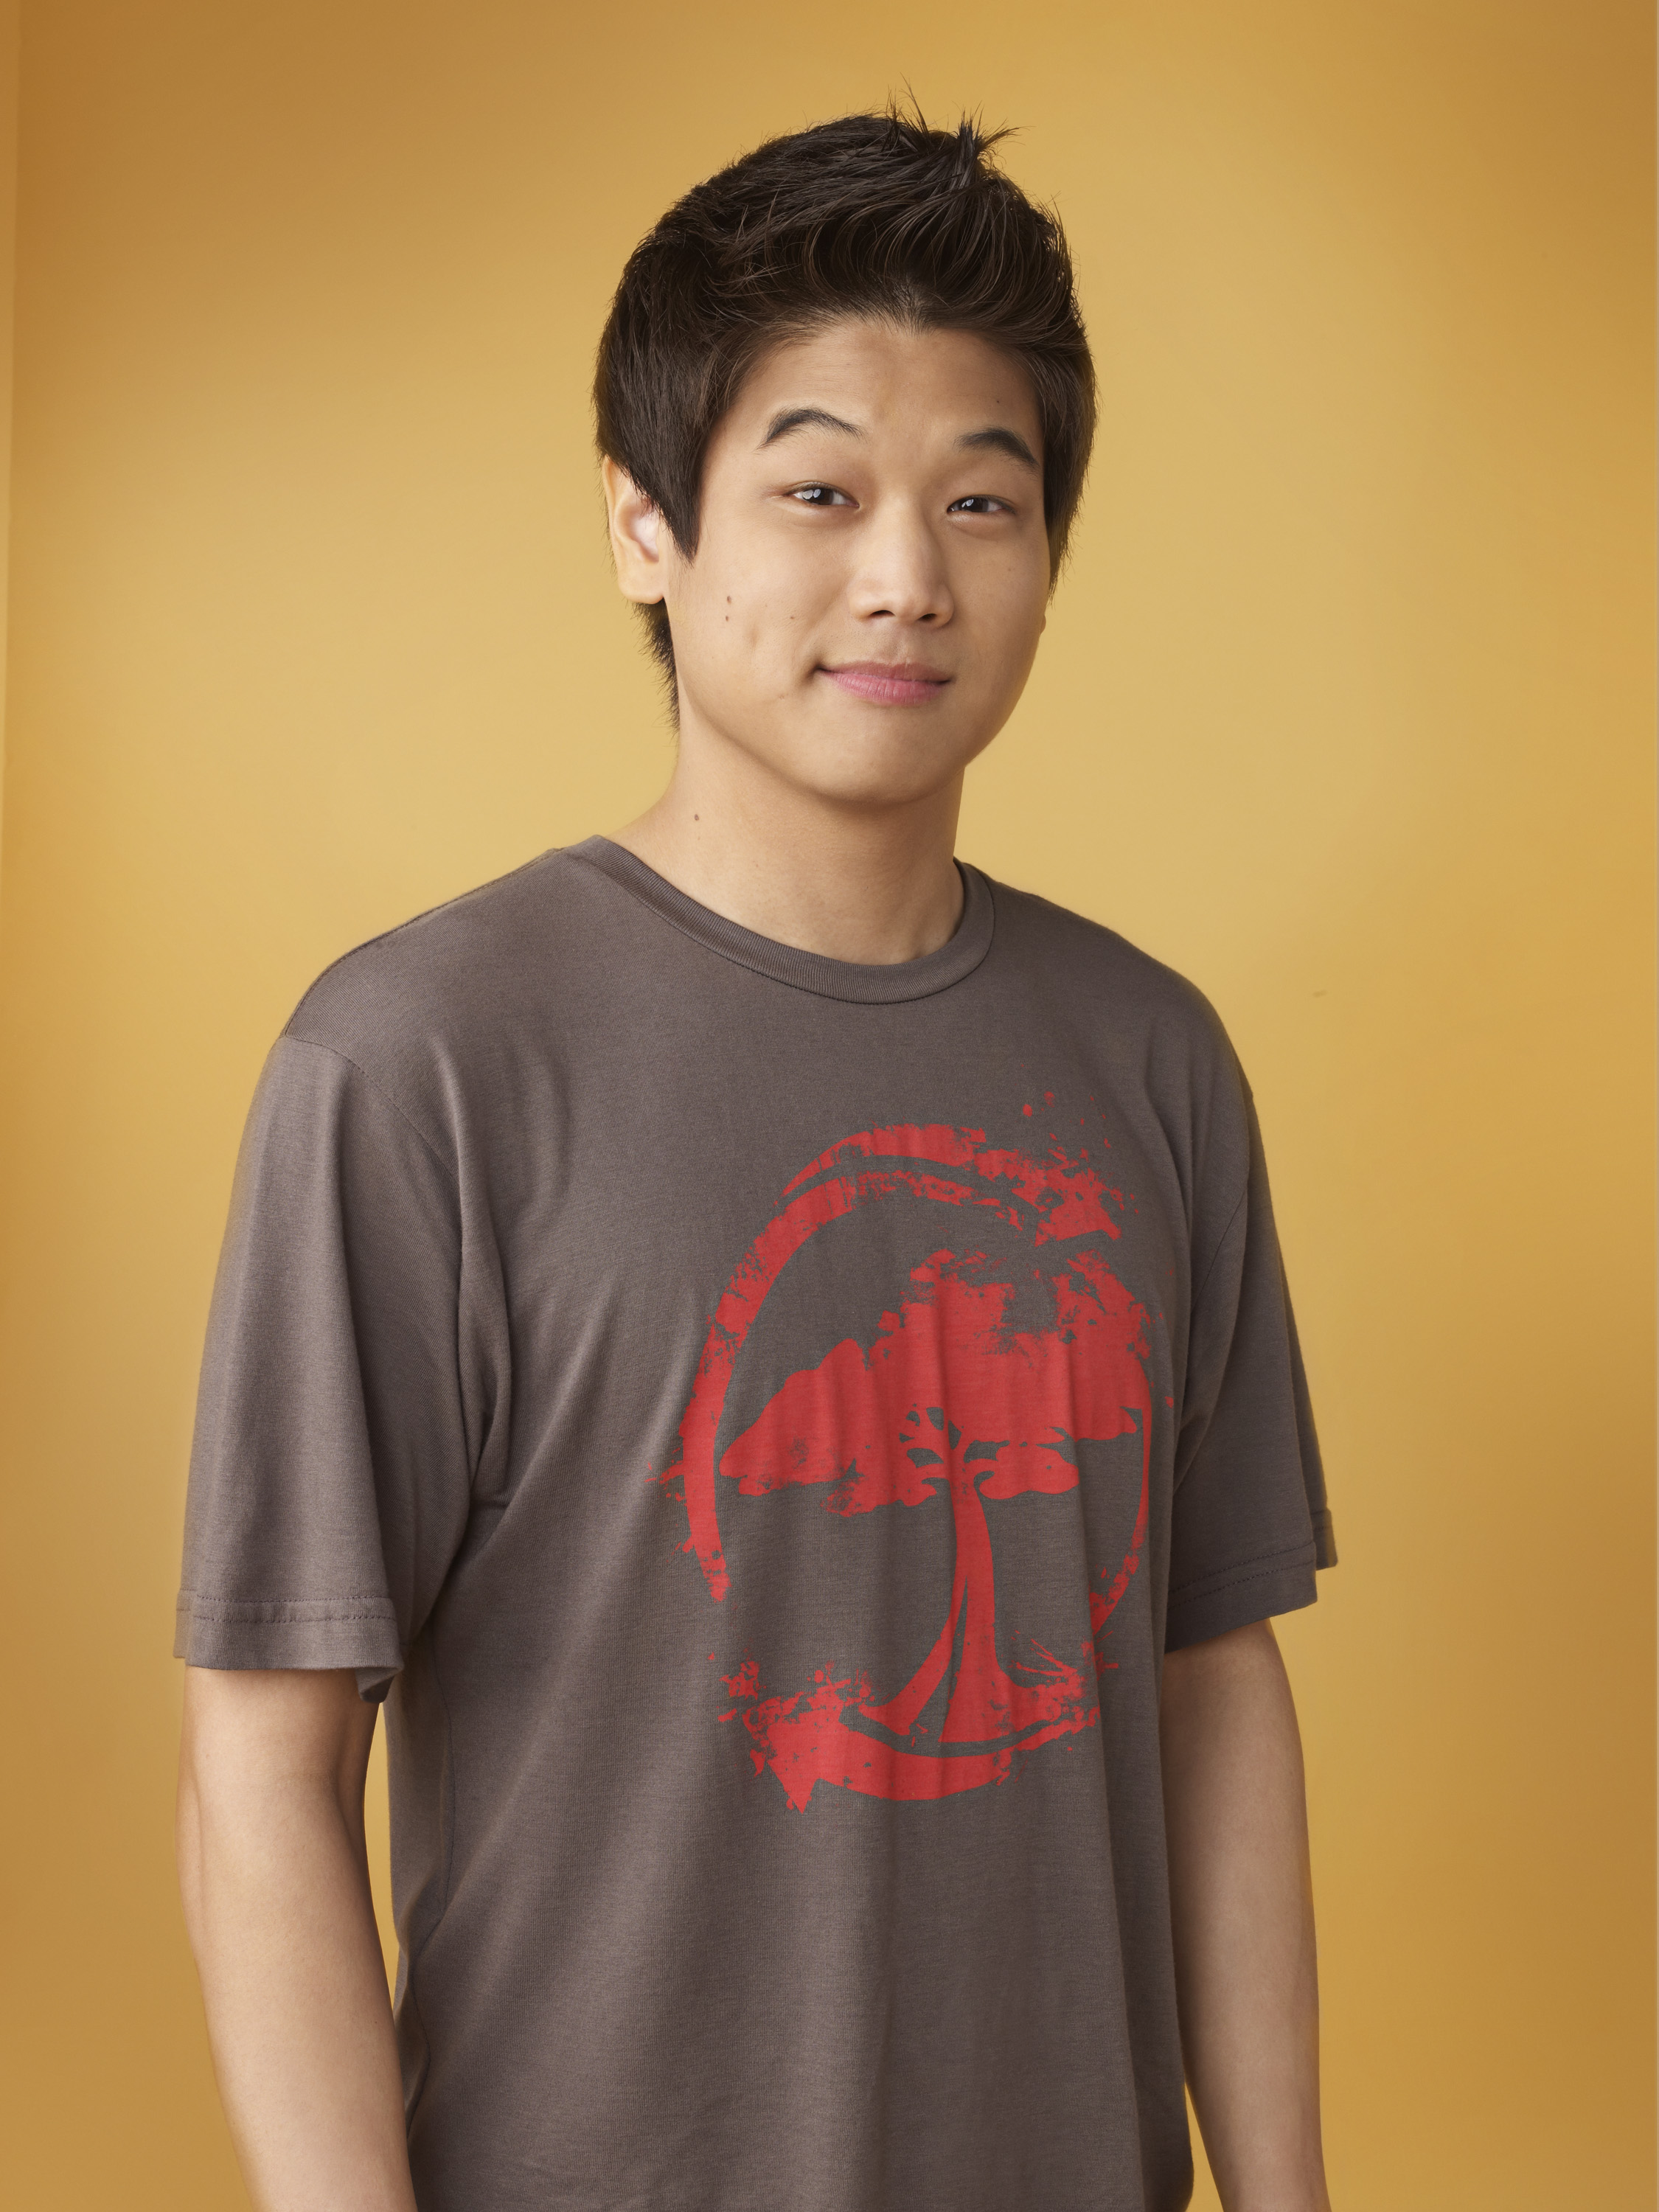 ki hong lee height